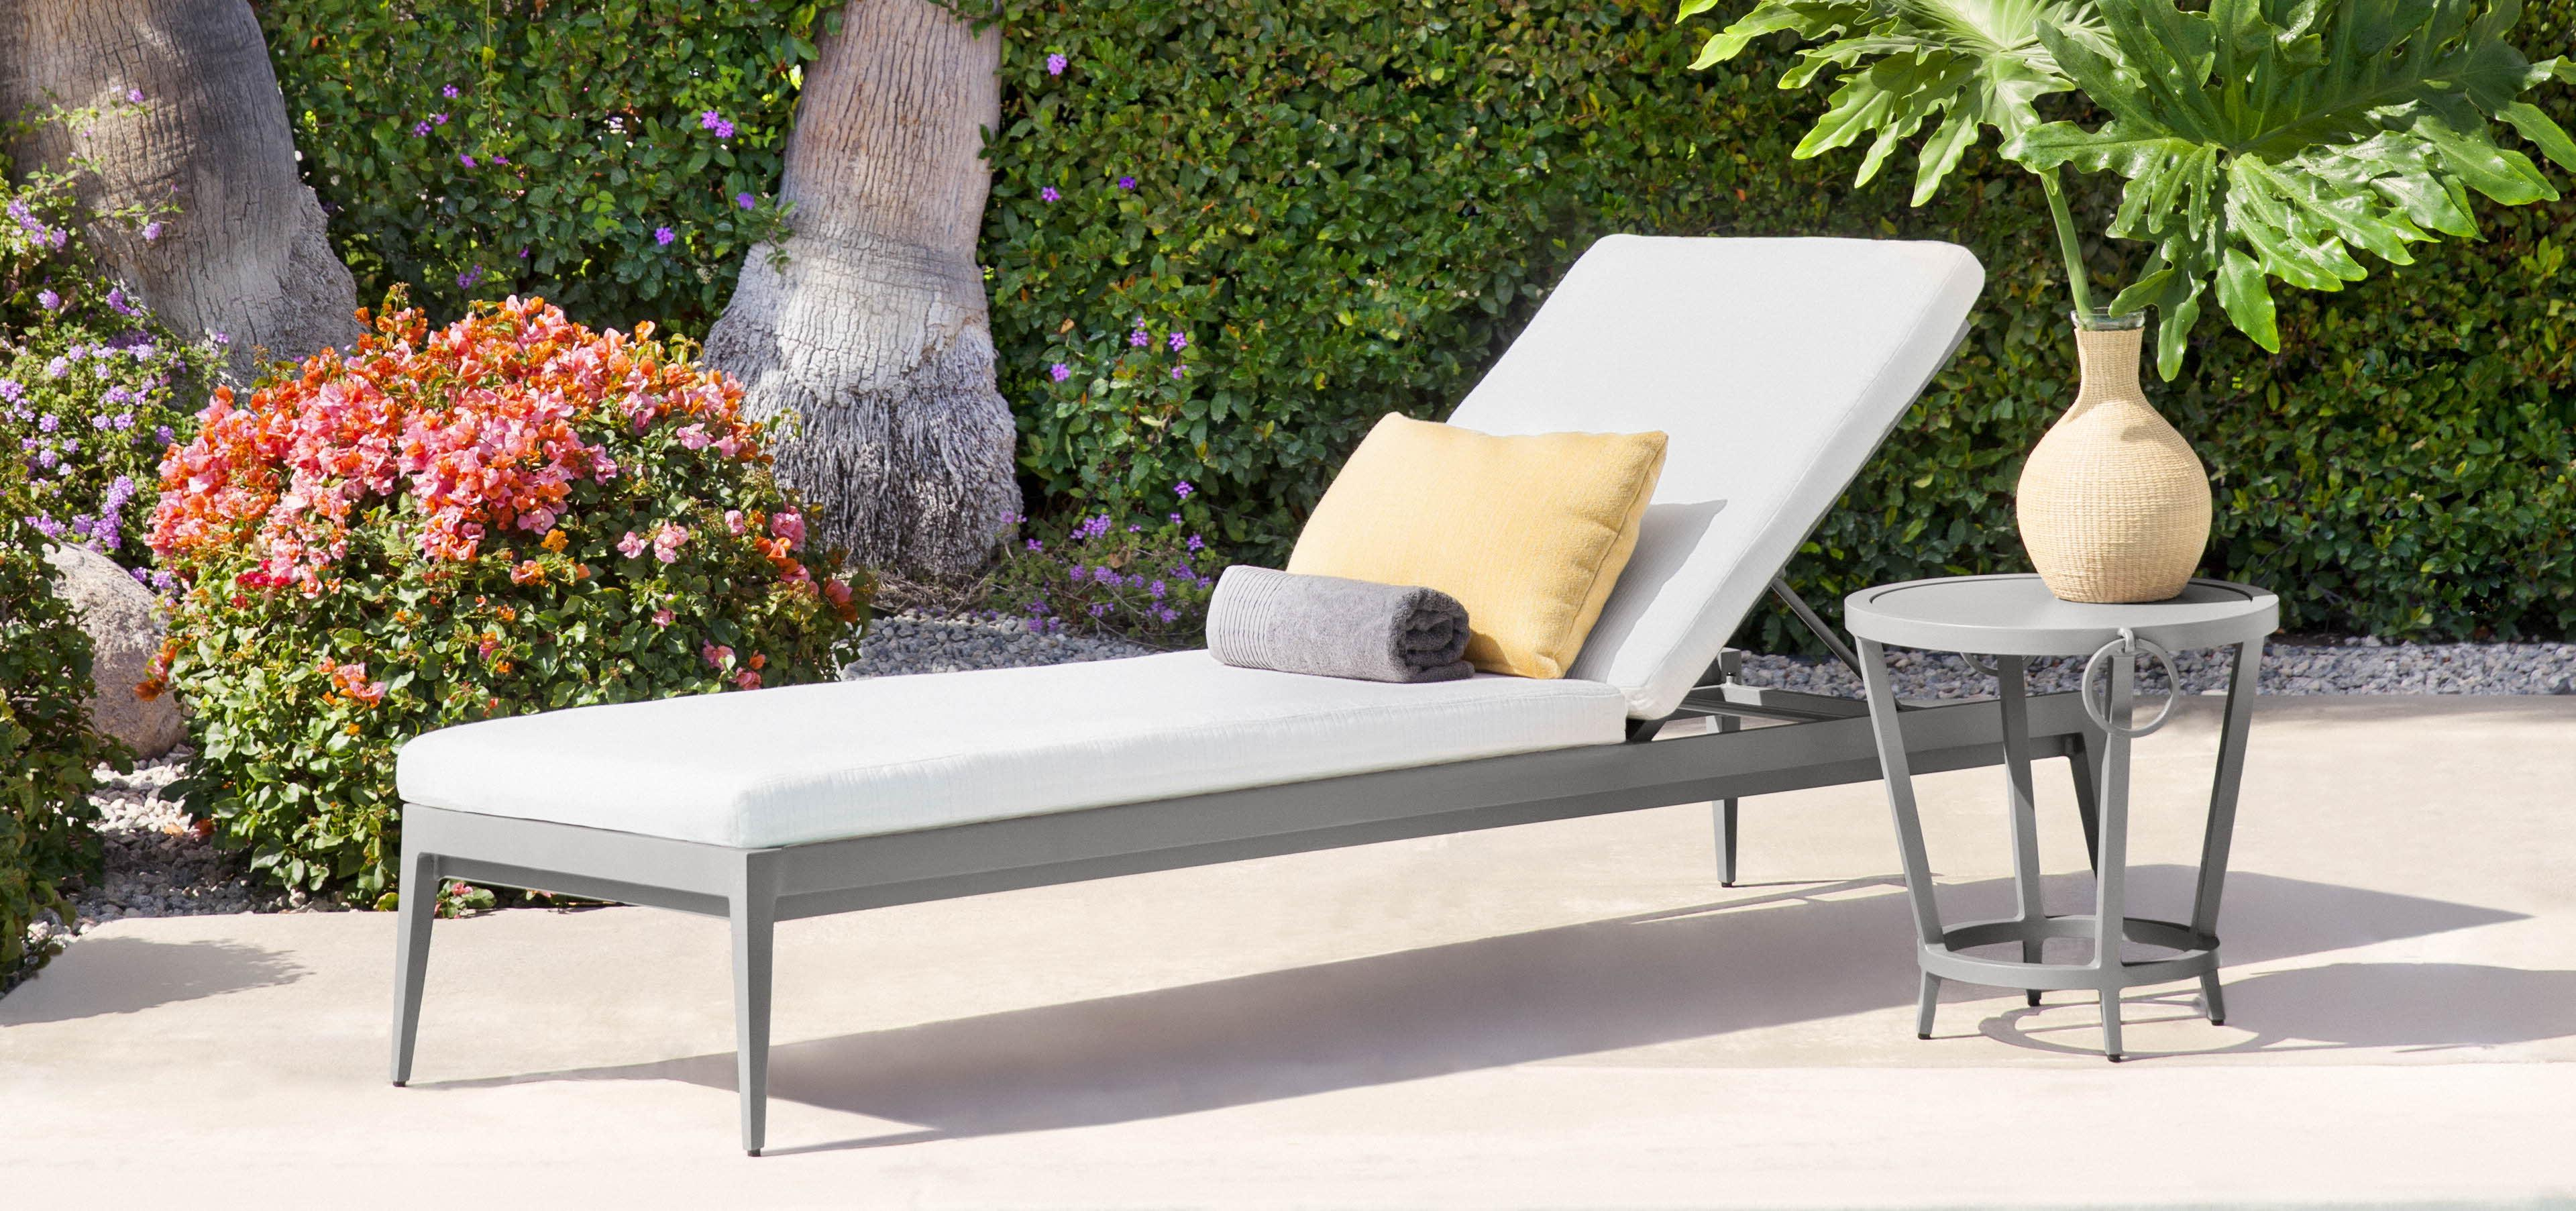 Residential & Commercial Outdoor Regarding Best And Newest Outdoor Cart Wheel Adjustable Chaise Lounge Chairs (View 19 of 25)